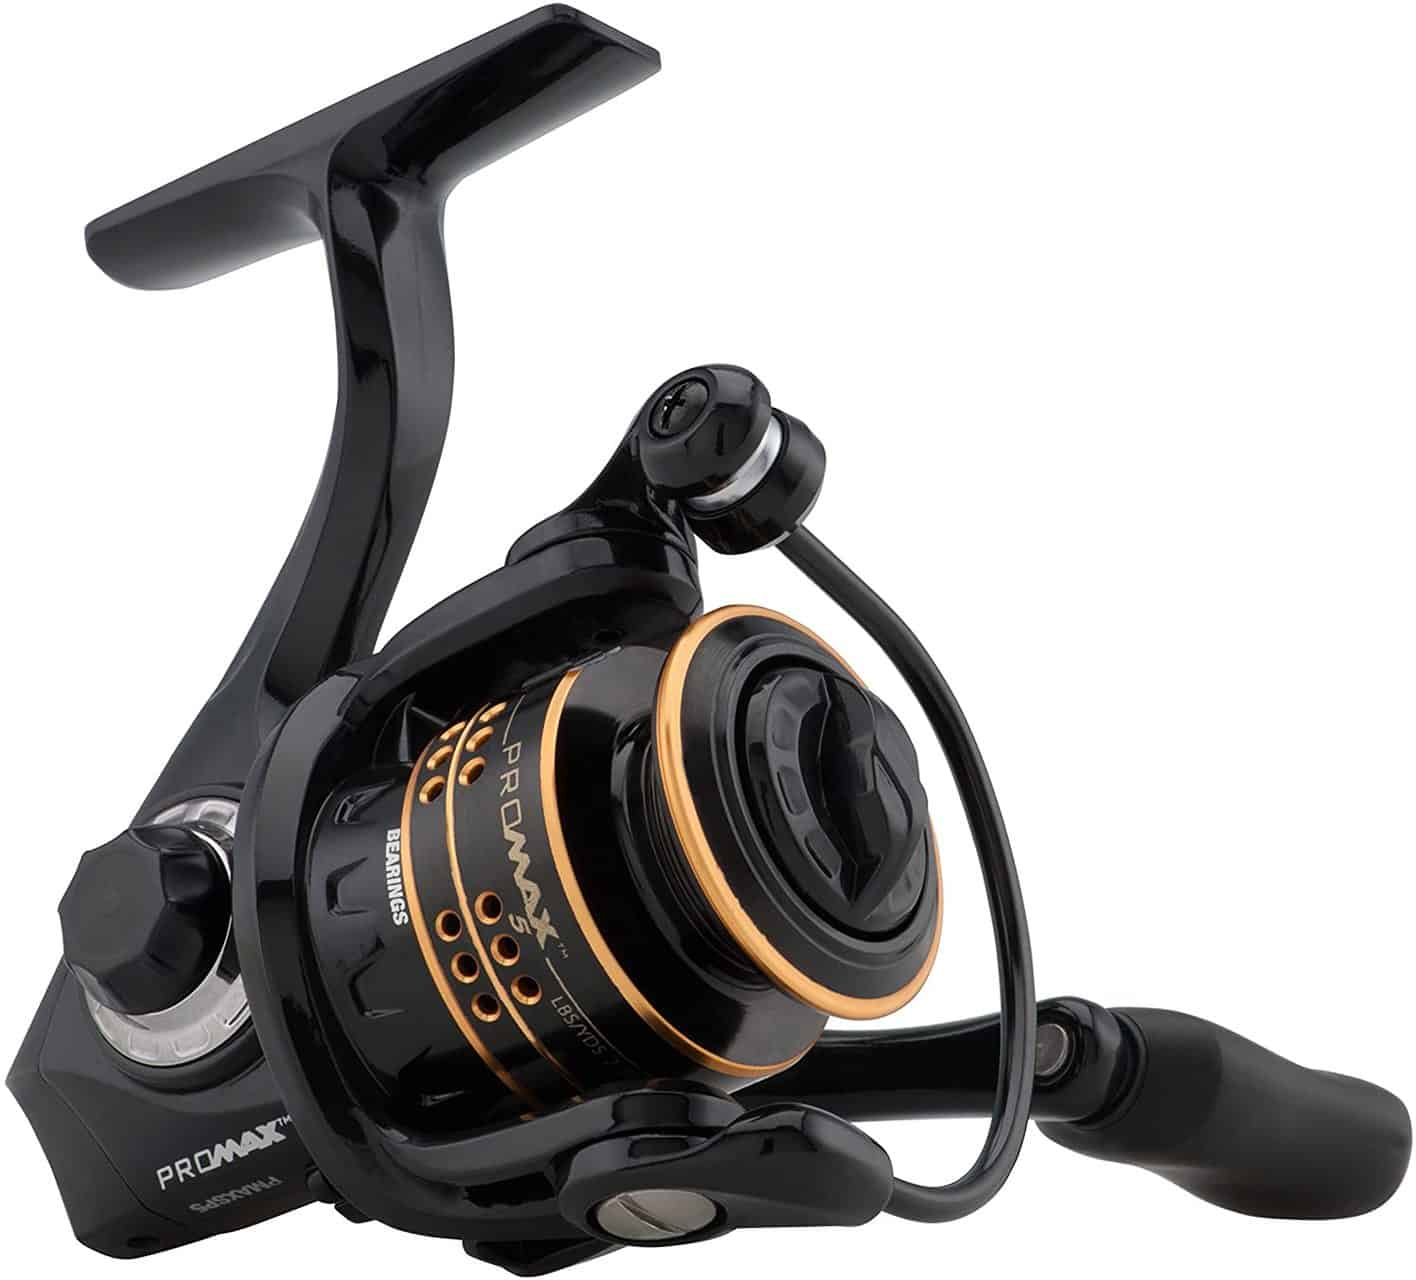 Pro Max Fishing Spinning Reel by Abu Garcia